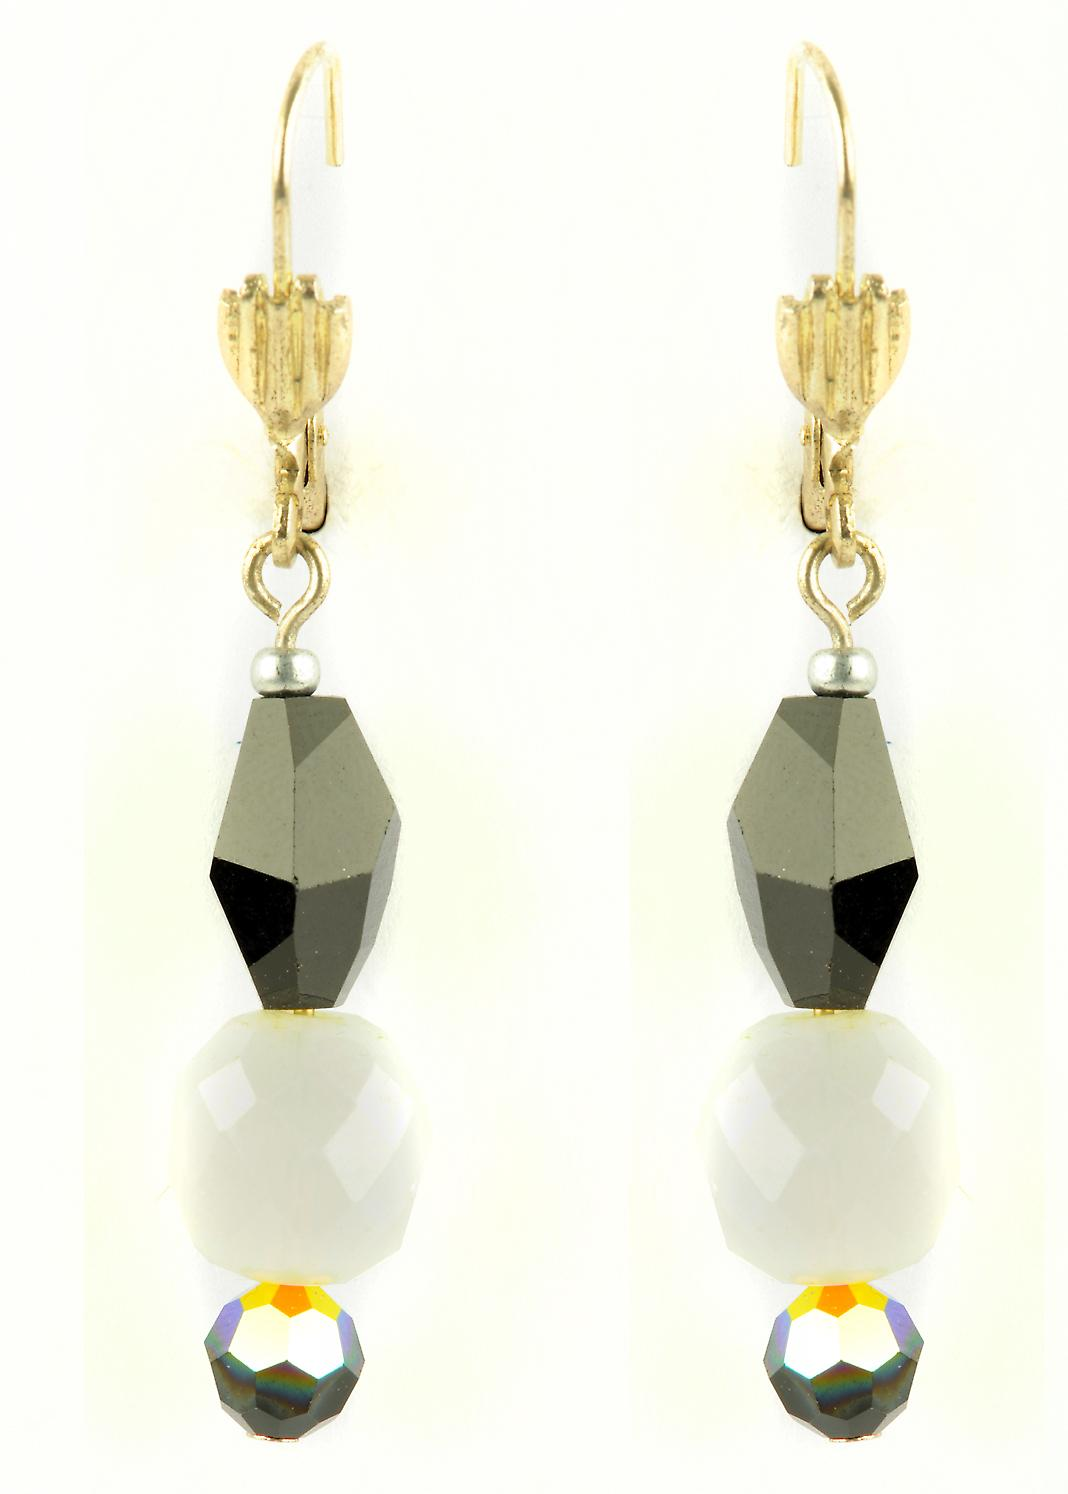 Waooh - Fashion Jewellery - WJ0815 - On Earrings with Swarovski Black & White - Frame Color Silver